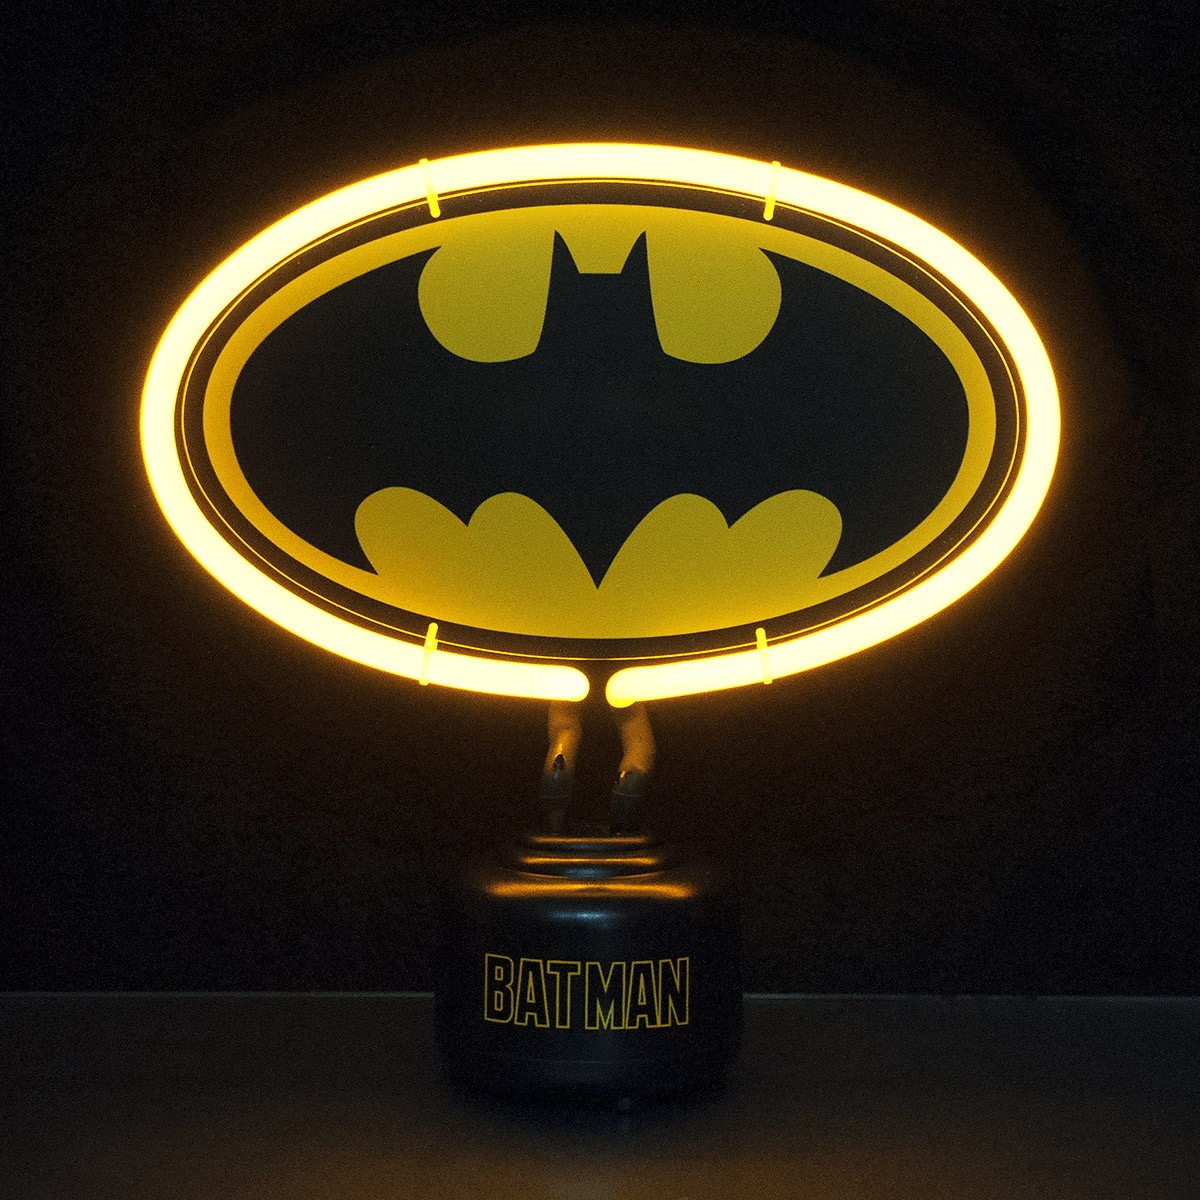 luminaire design avec n on l 39 effigie de batman sur logeekdesign. Black Bedroom Furniture Sets. Home Design Ideas